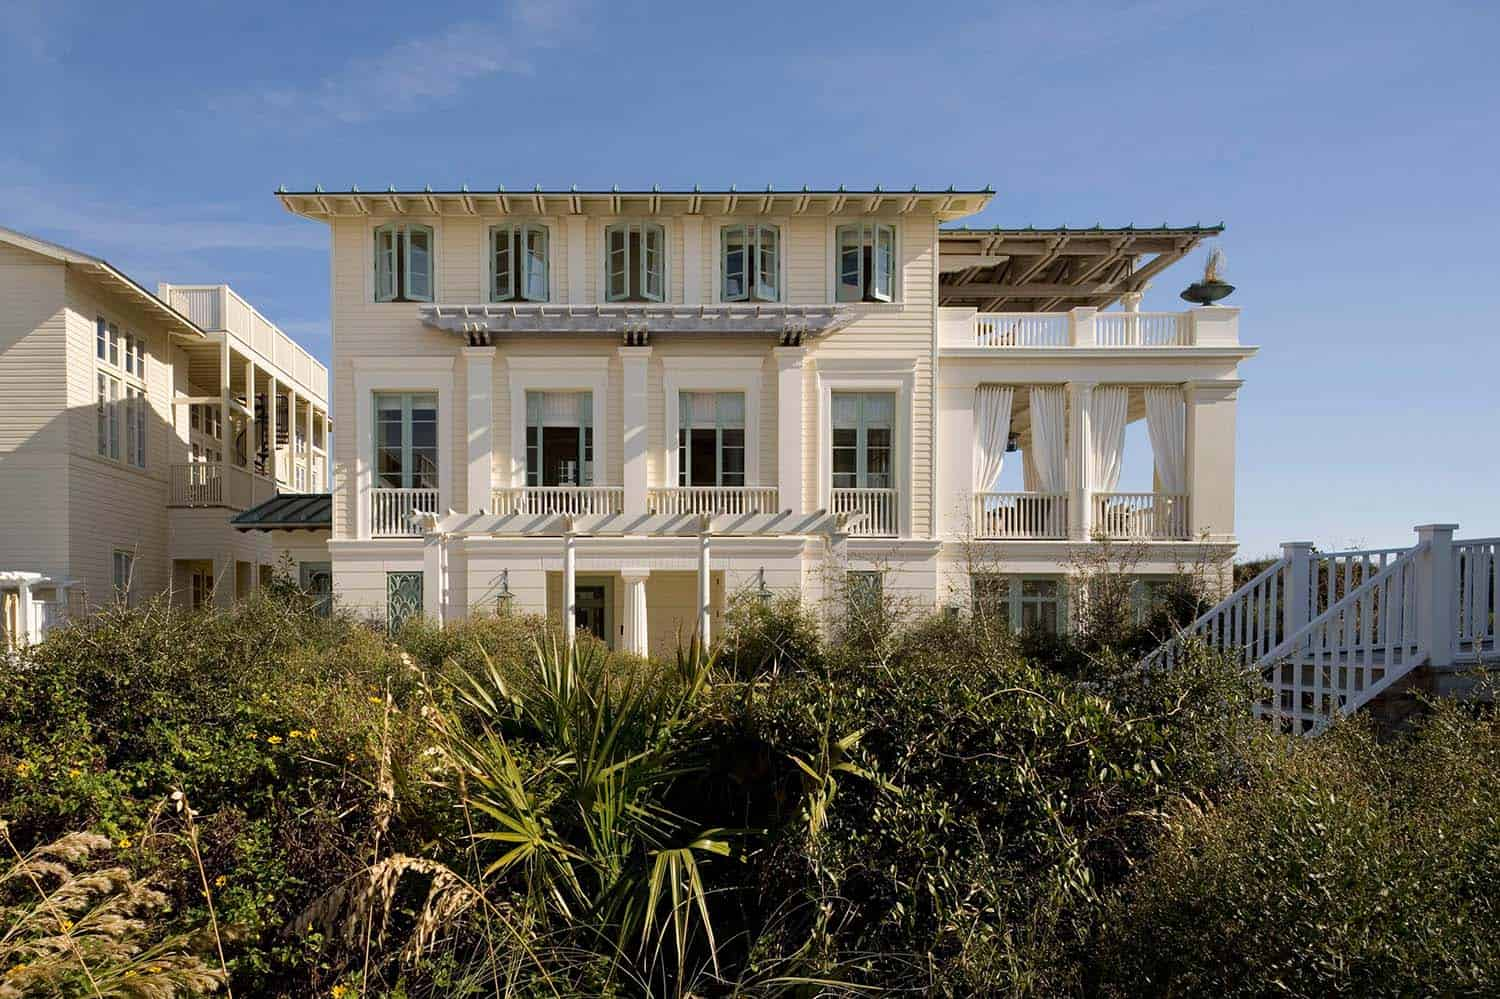 Charming Seaside House-Robert AM Stern Architects-02-1 Kindesign